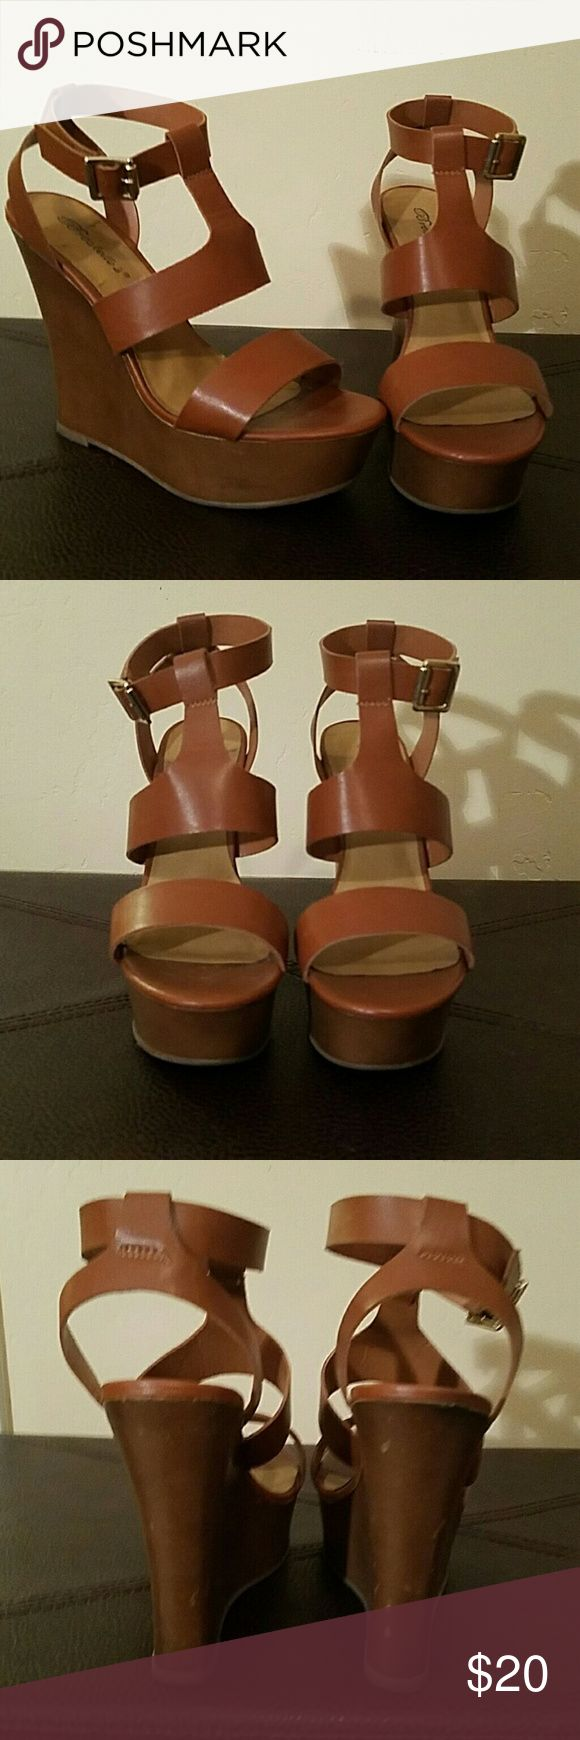 Tan Wedge sandals Tan Wedge sandals only been worn couple of times has few knicks on heel Breckelles Shoes Sandals